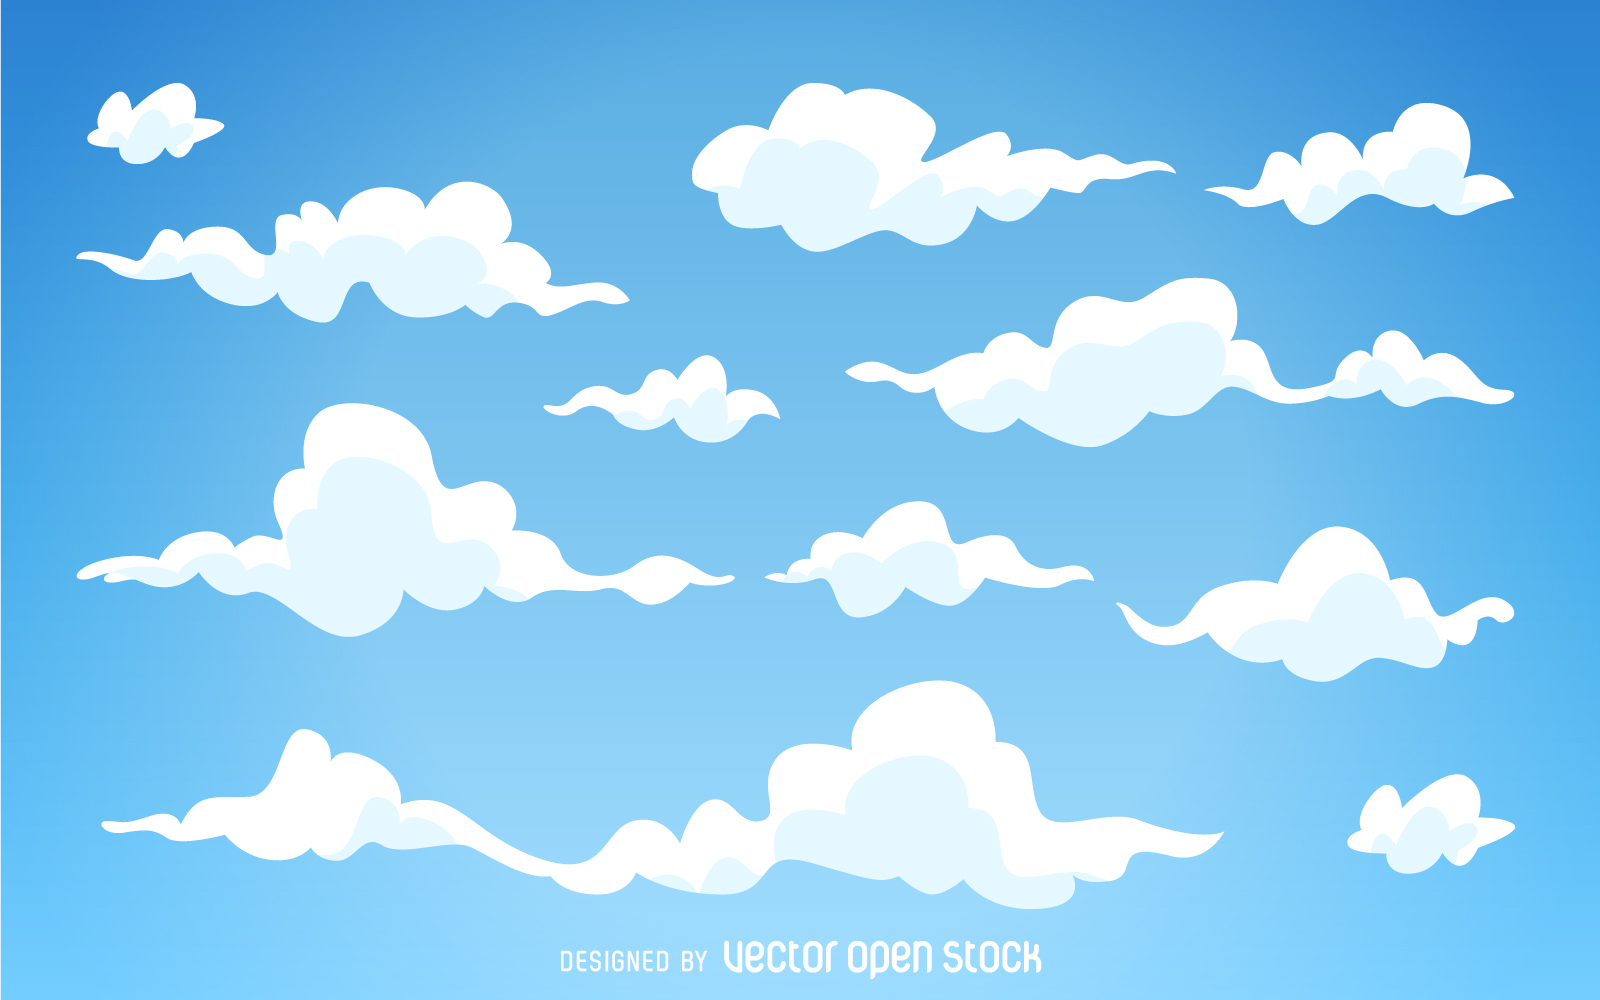 Drawn clouds illustrated Clouds Download cartoon Image Illustrated